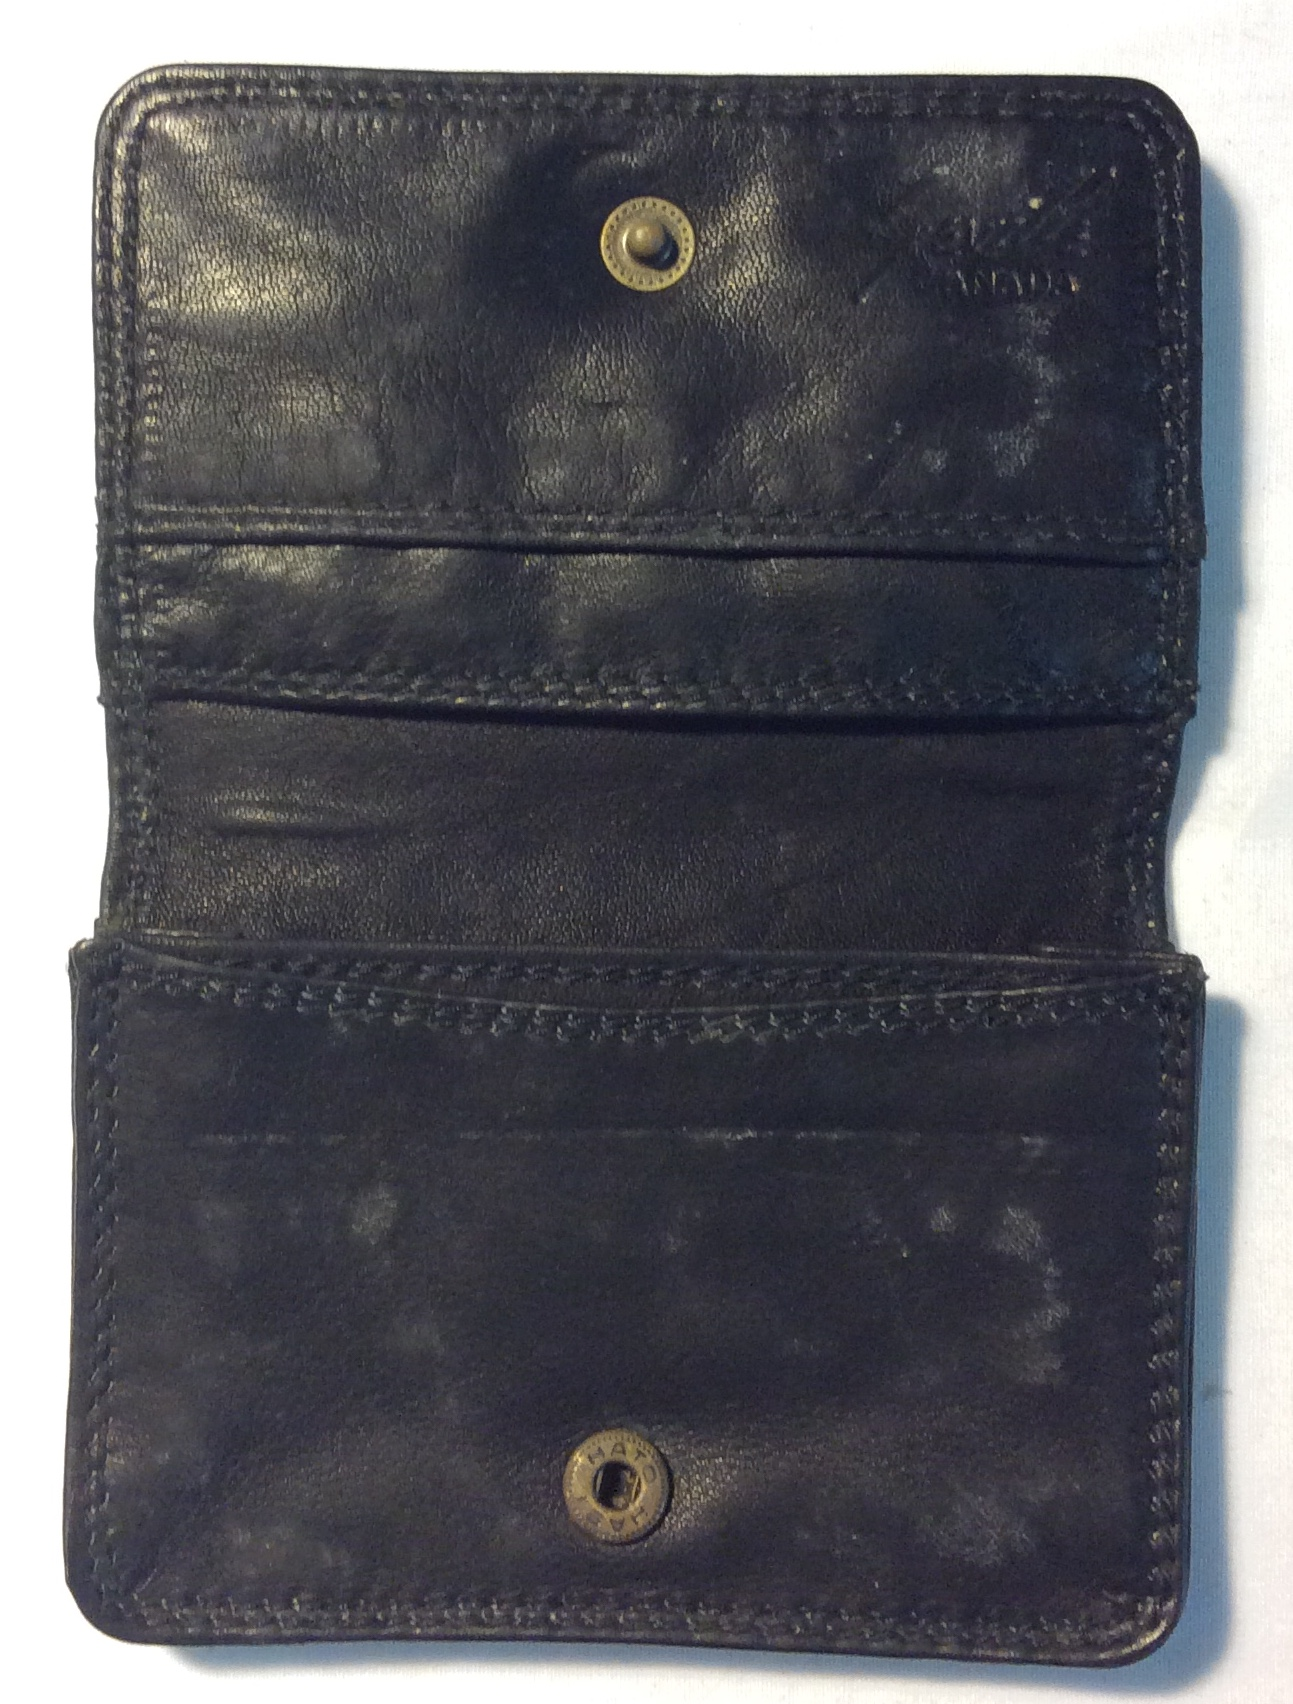 Black leather card holder with brass